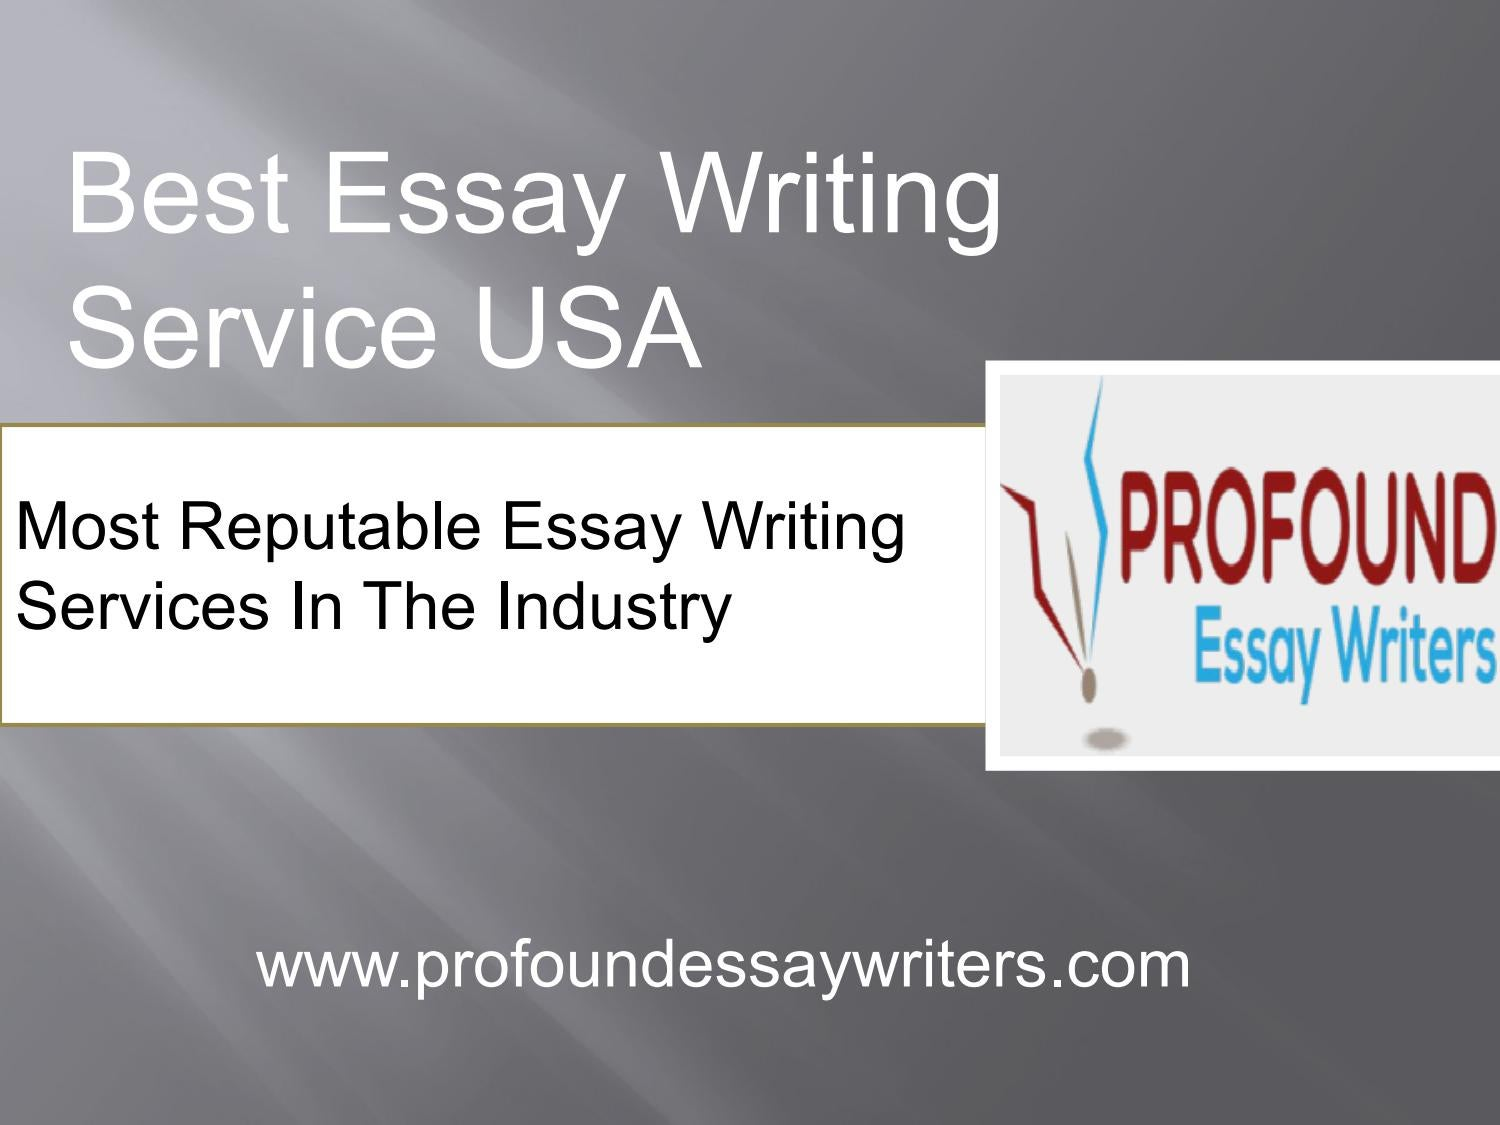 Our Writing Services